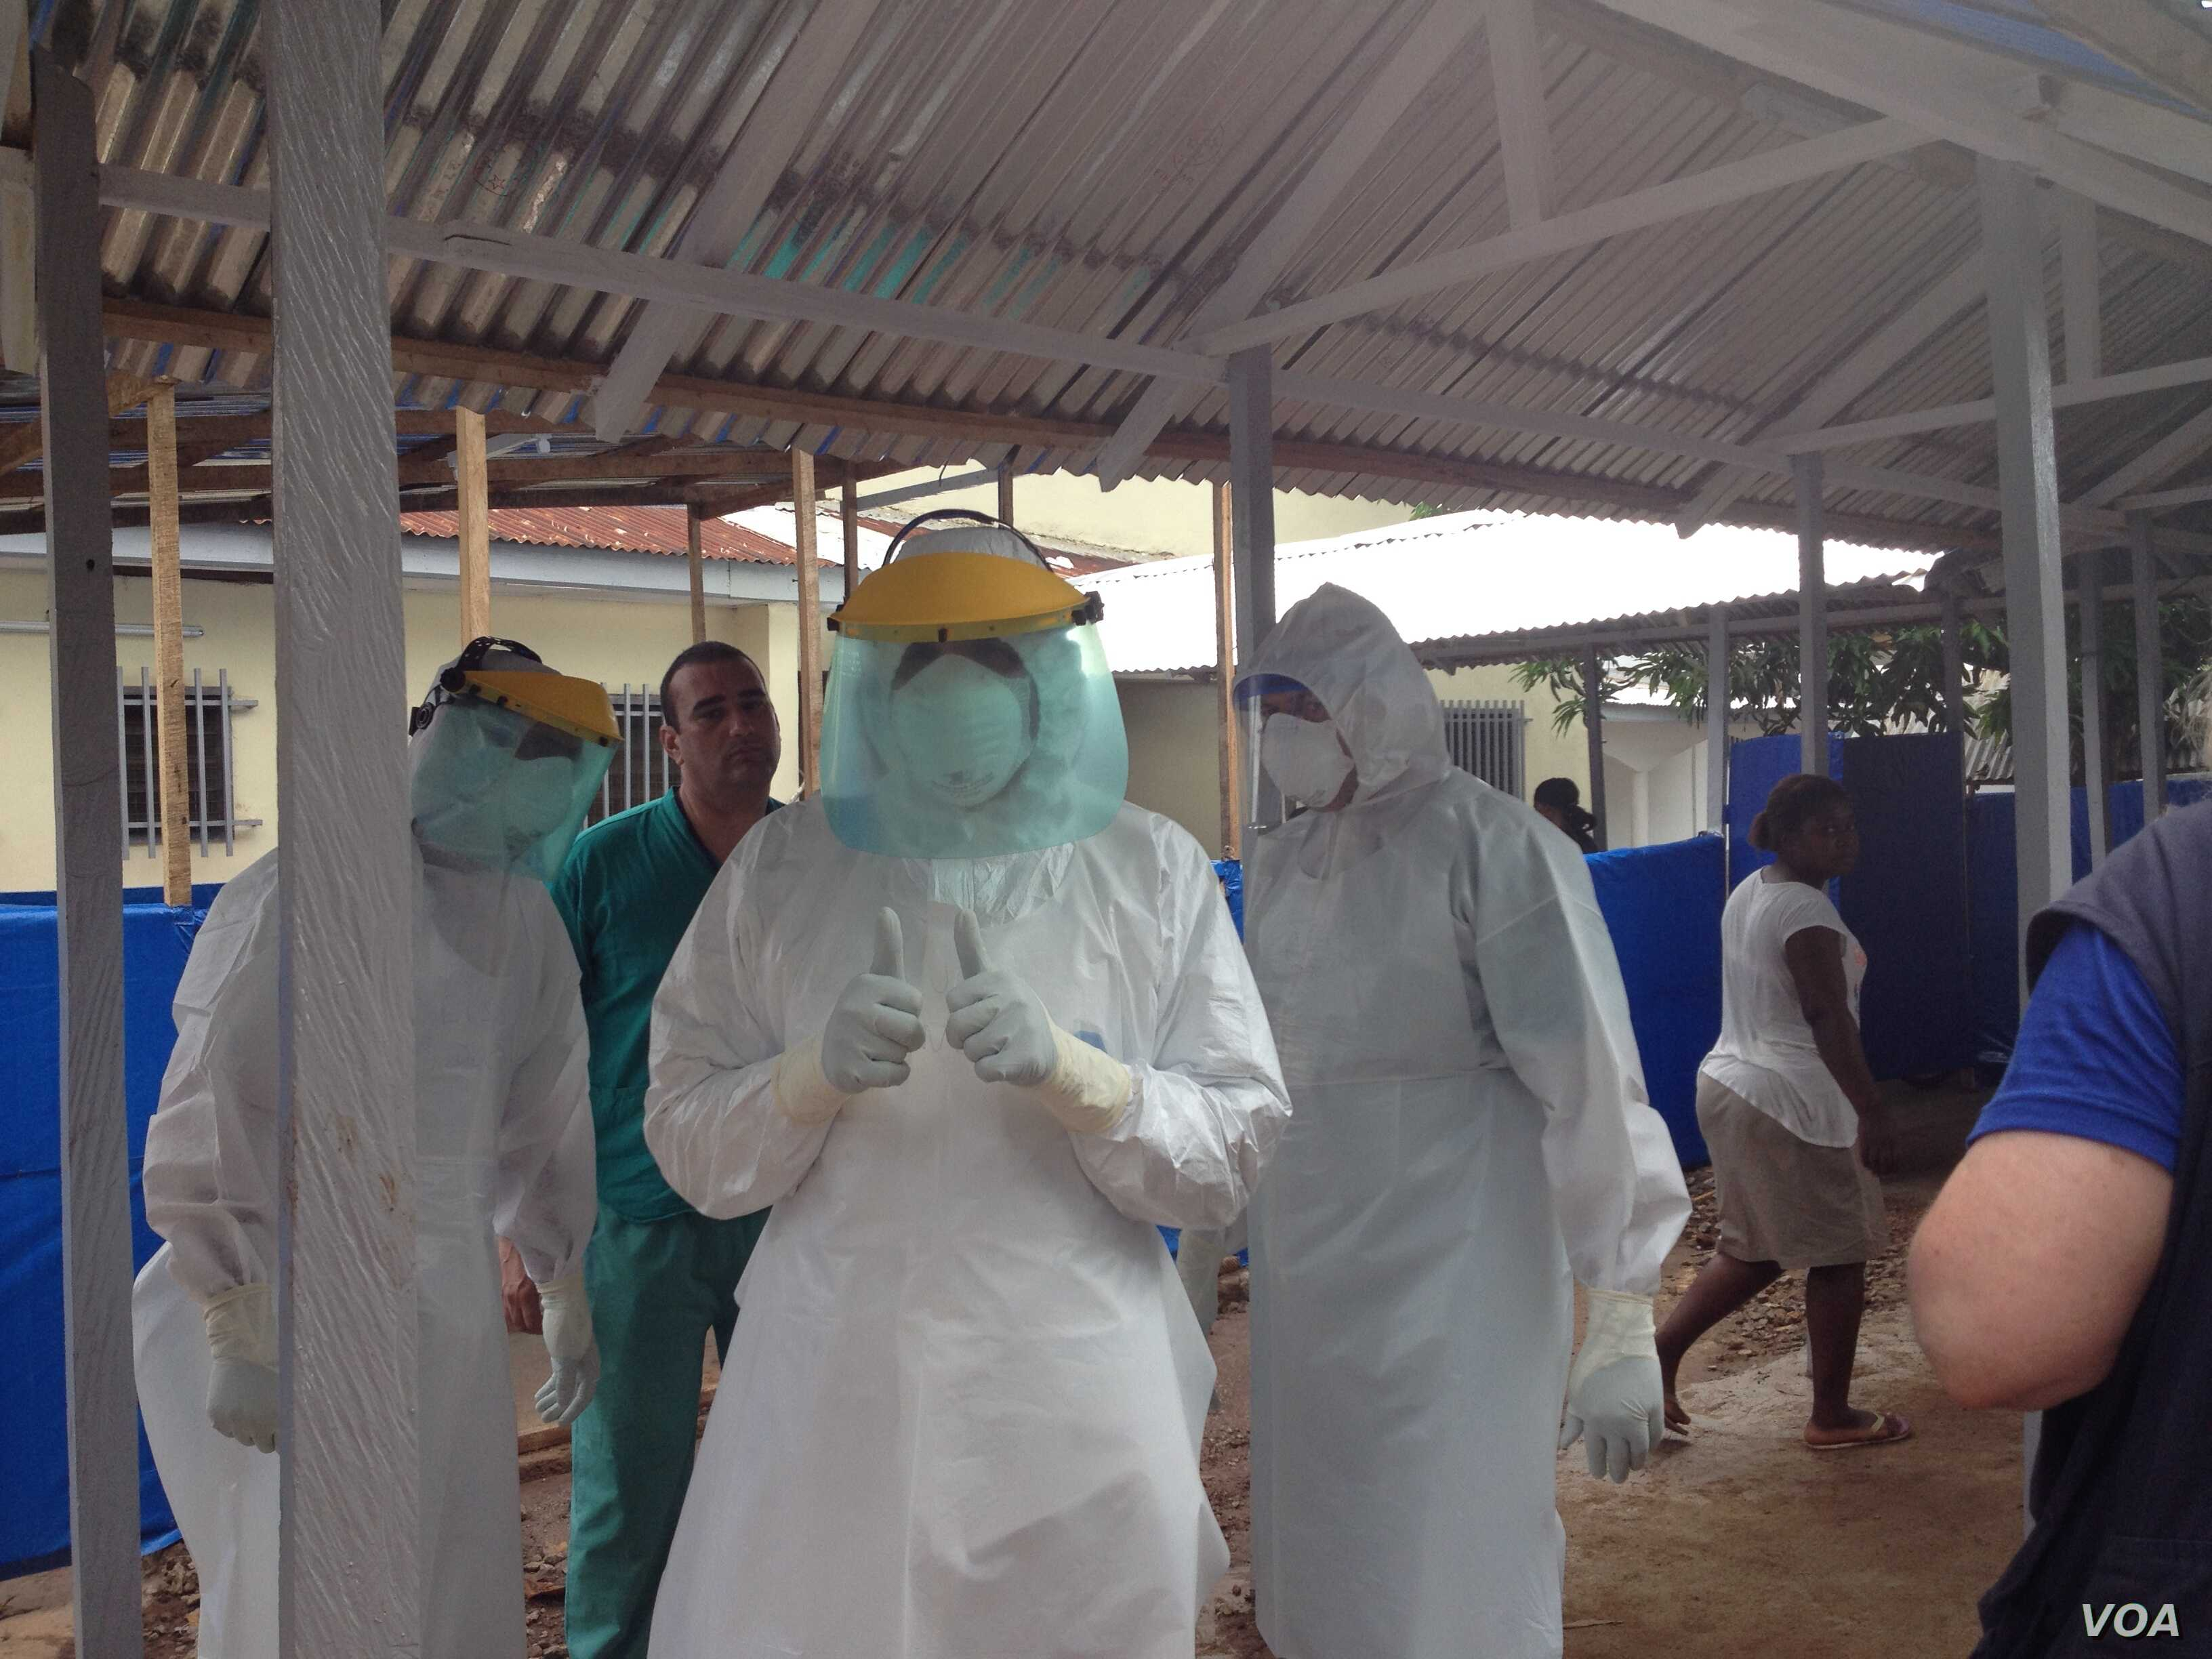 Cuban medical team training in personal protective equipment (PPE) at an Ebola center being built in Waterloo, east of Freetown, Sierra Leone, Nov. 17, 2014. (Nina deVries/VOA)